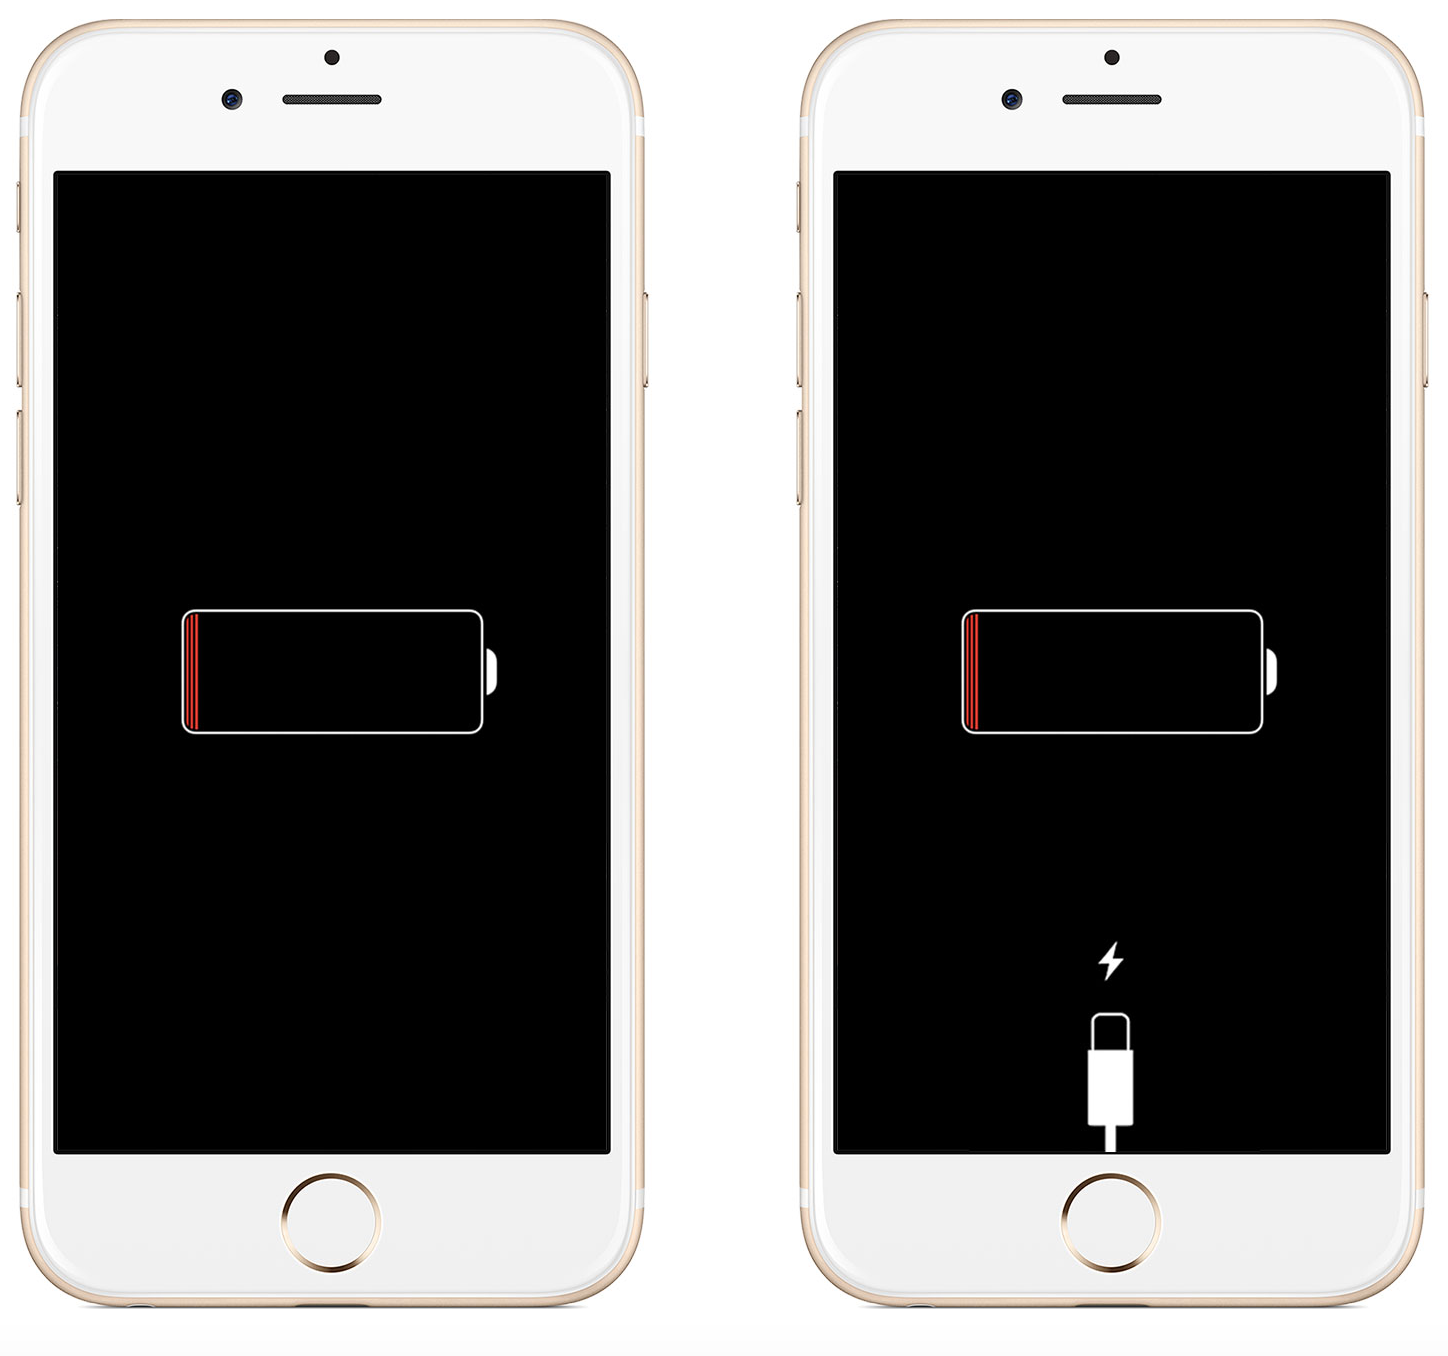 Iphone Charging Issues Caused By Tristar Chip Failure Via